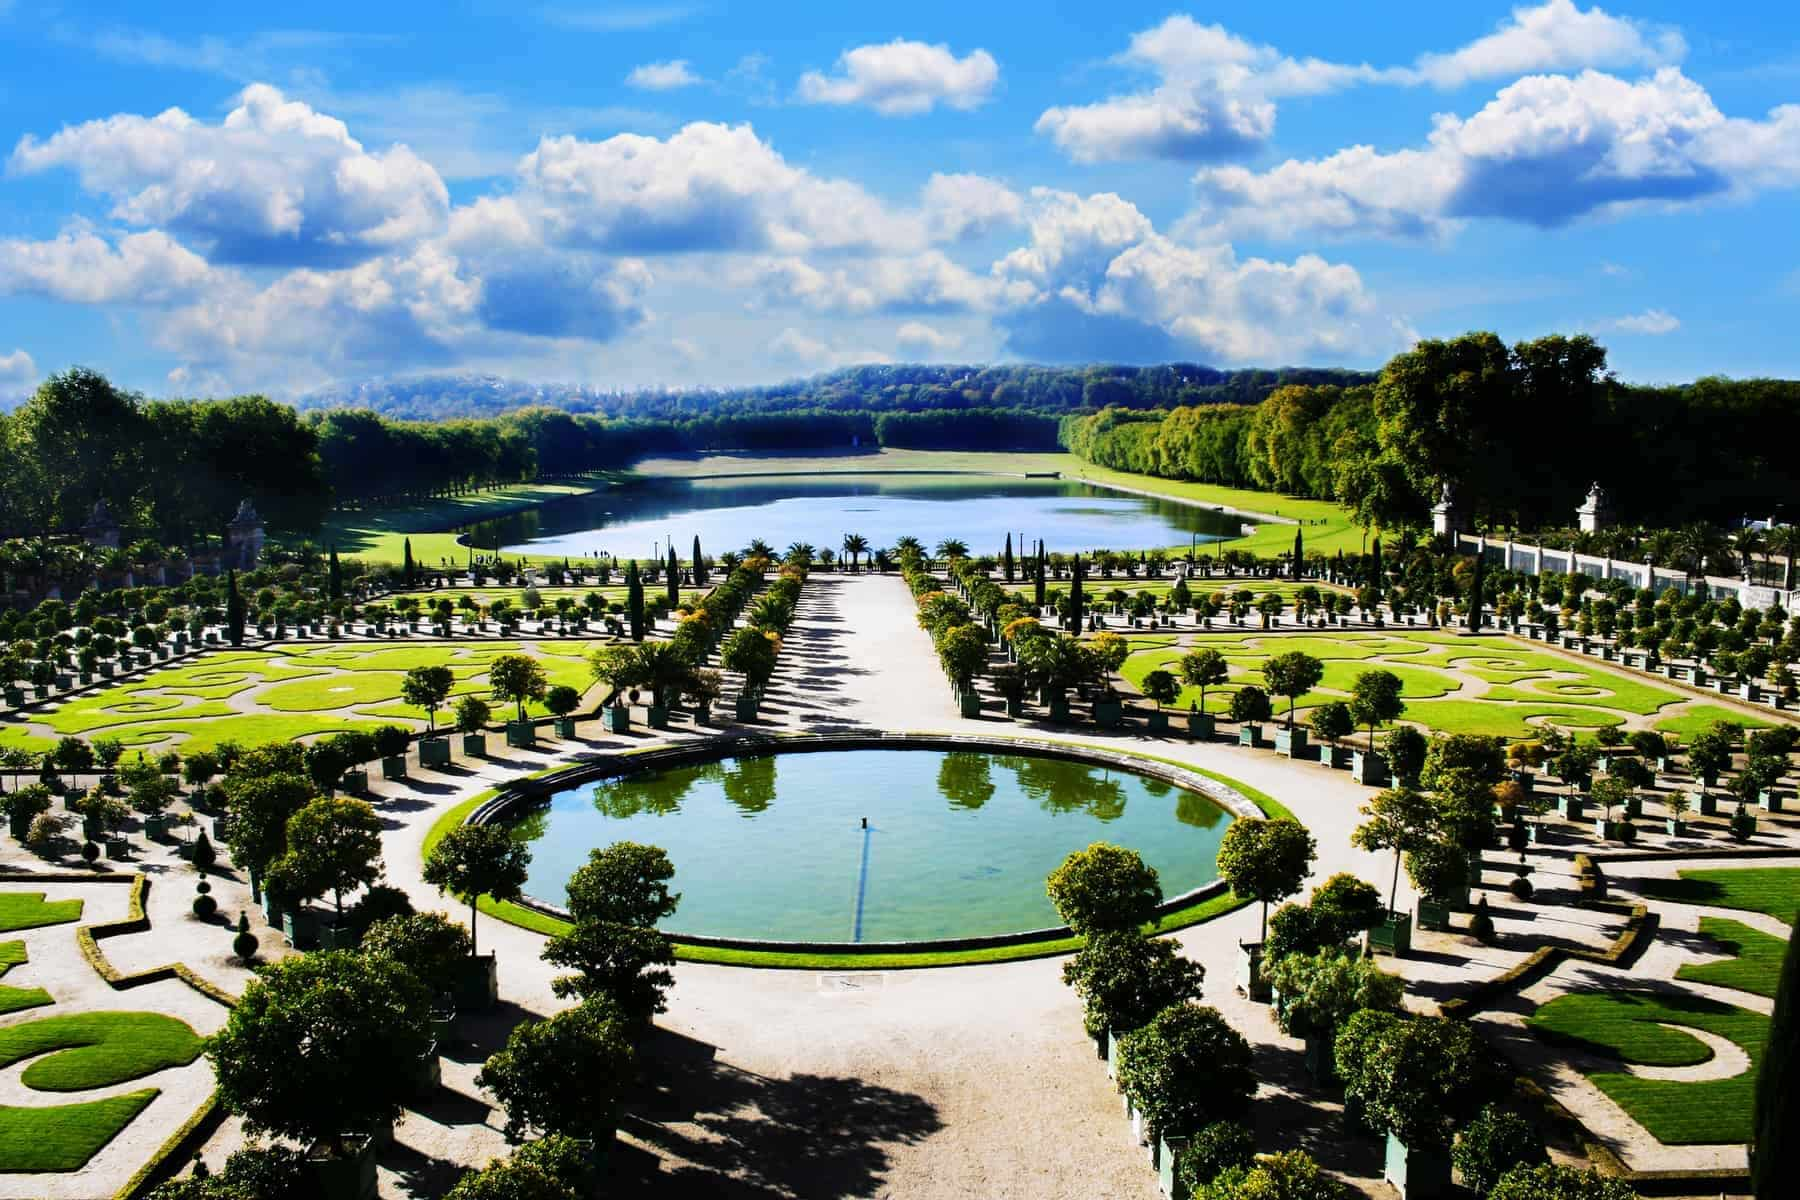 Versailles, royal garden i Paris